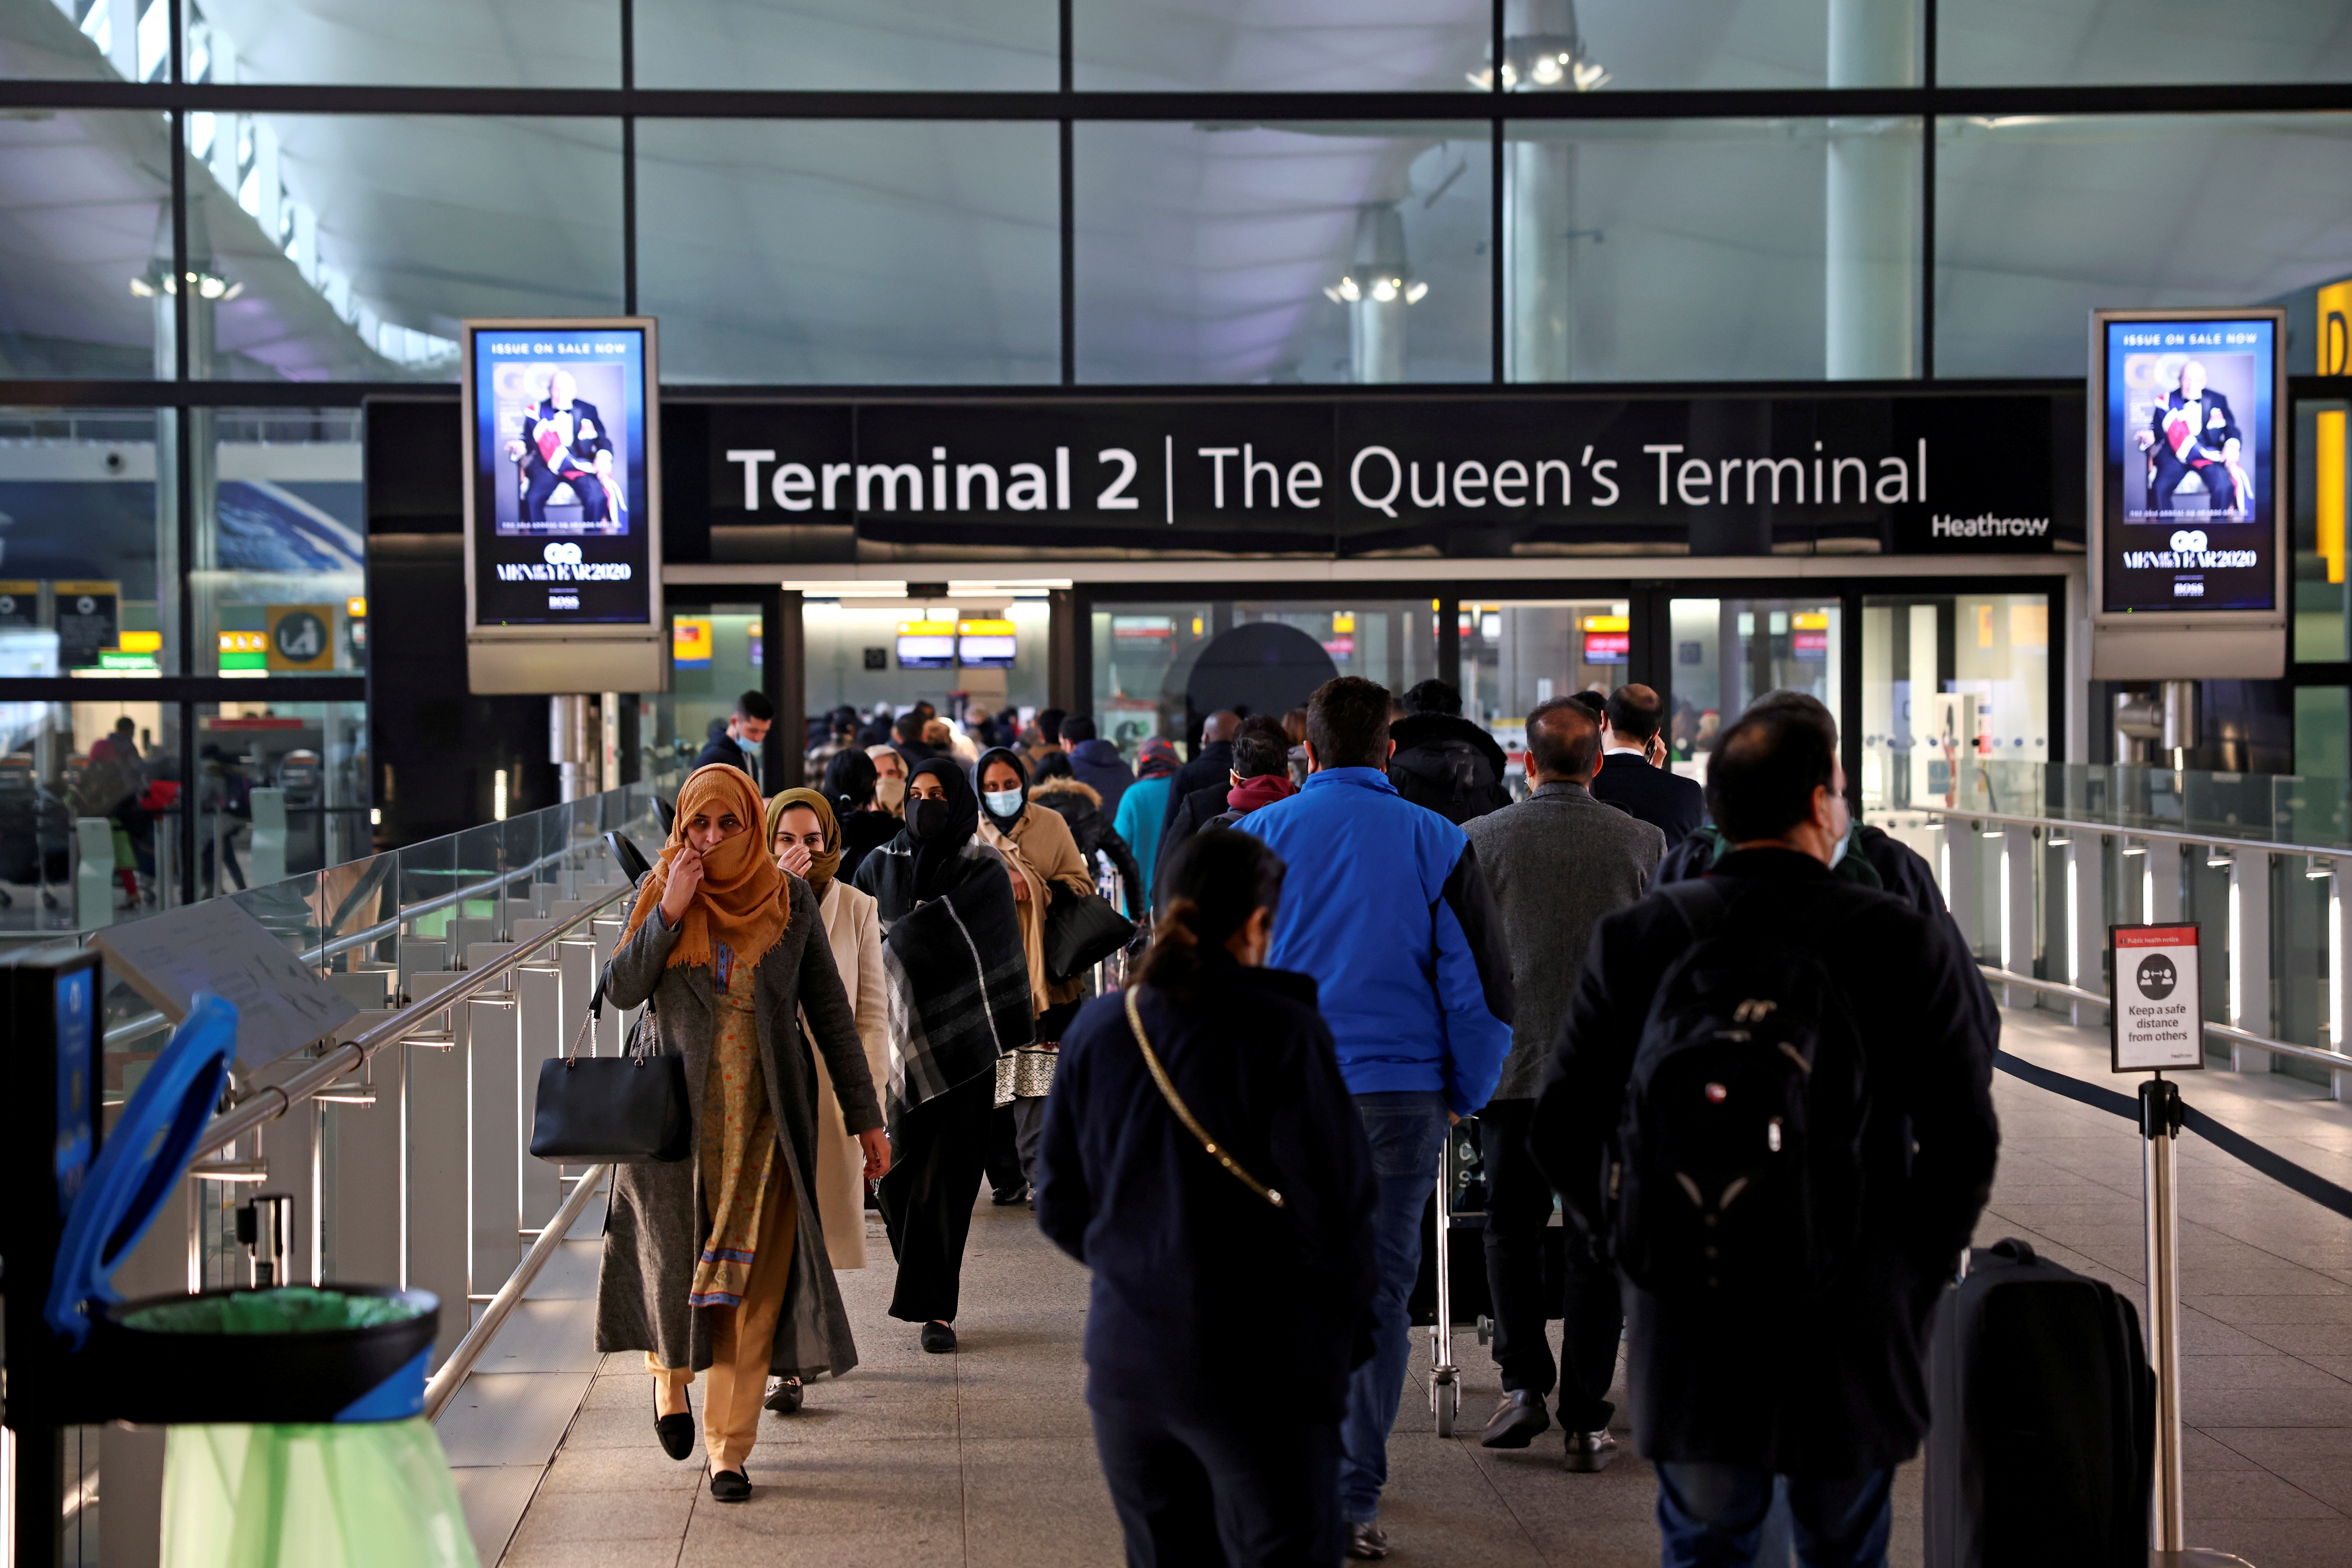 People queue to enter terminal 2, as tighter rules for international travellers start, at Heathrow Airport, amid the spread of the coronavirus disease (COVID-19) pandemic, London, Britain, January 18, 2021. REUTERS/Henry Nicholls/File Photo